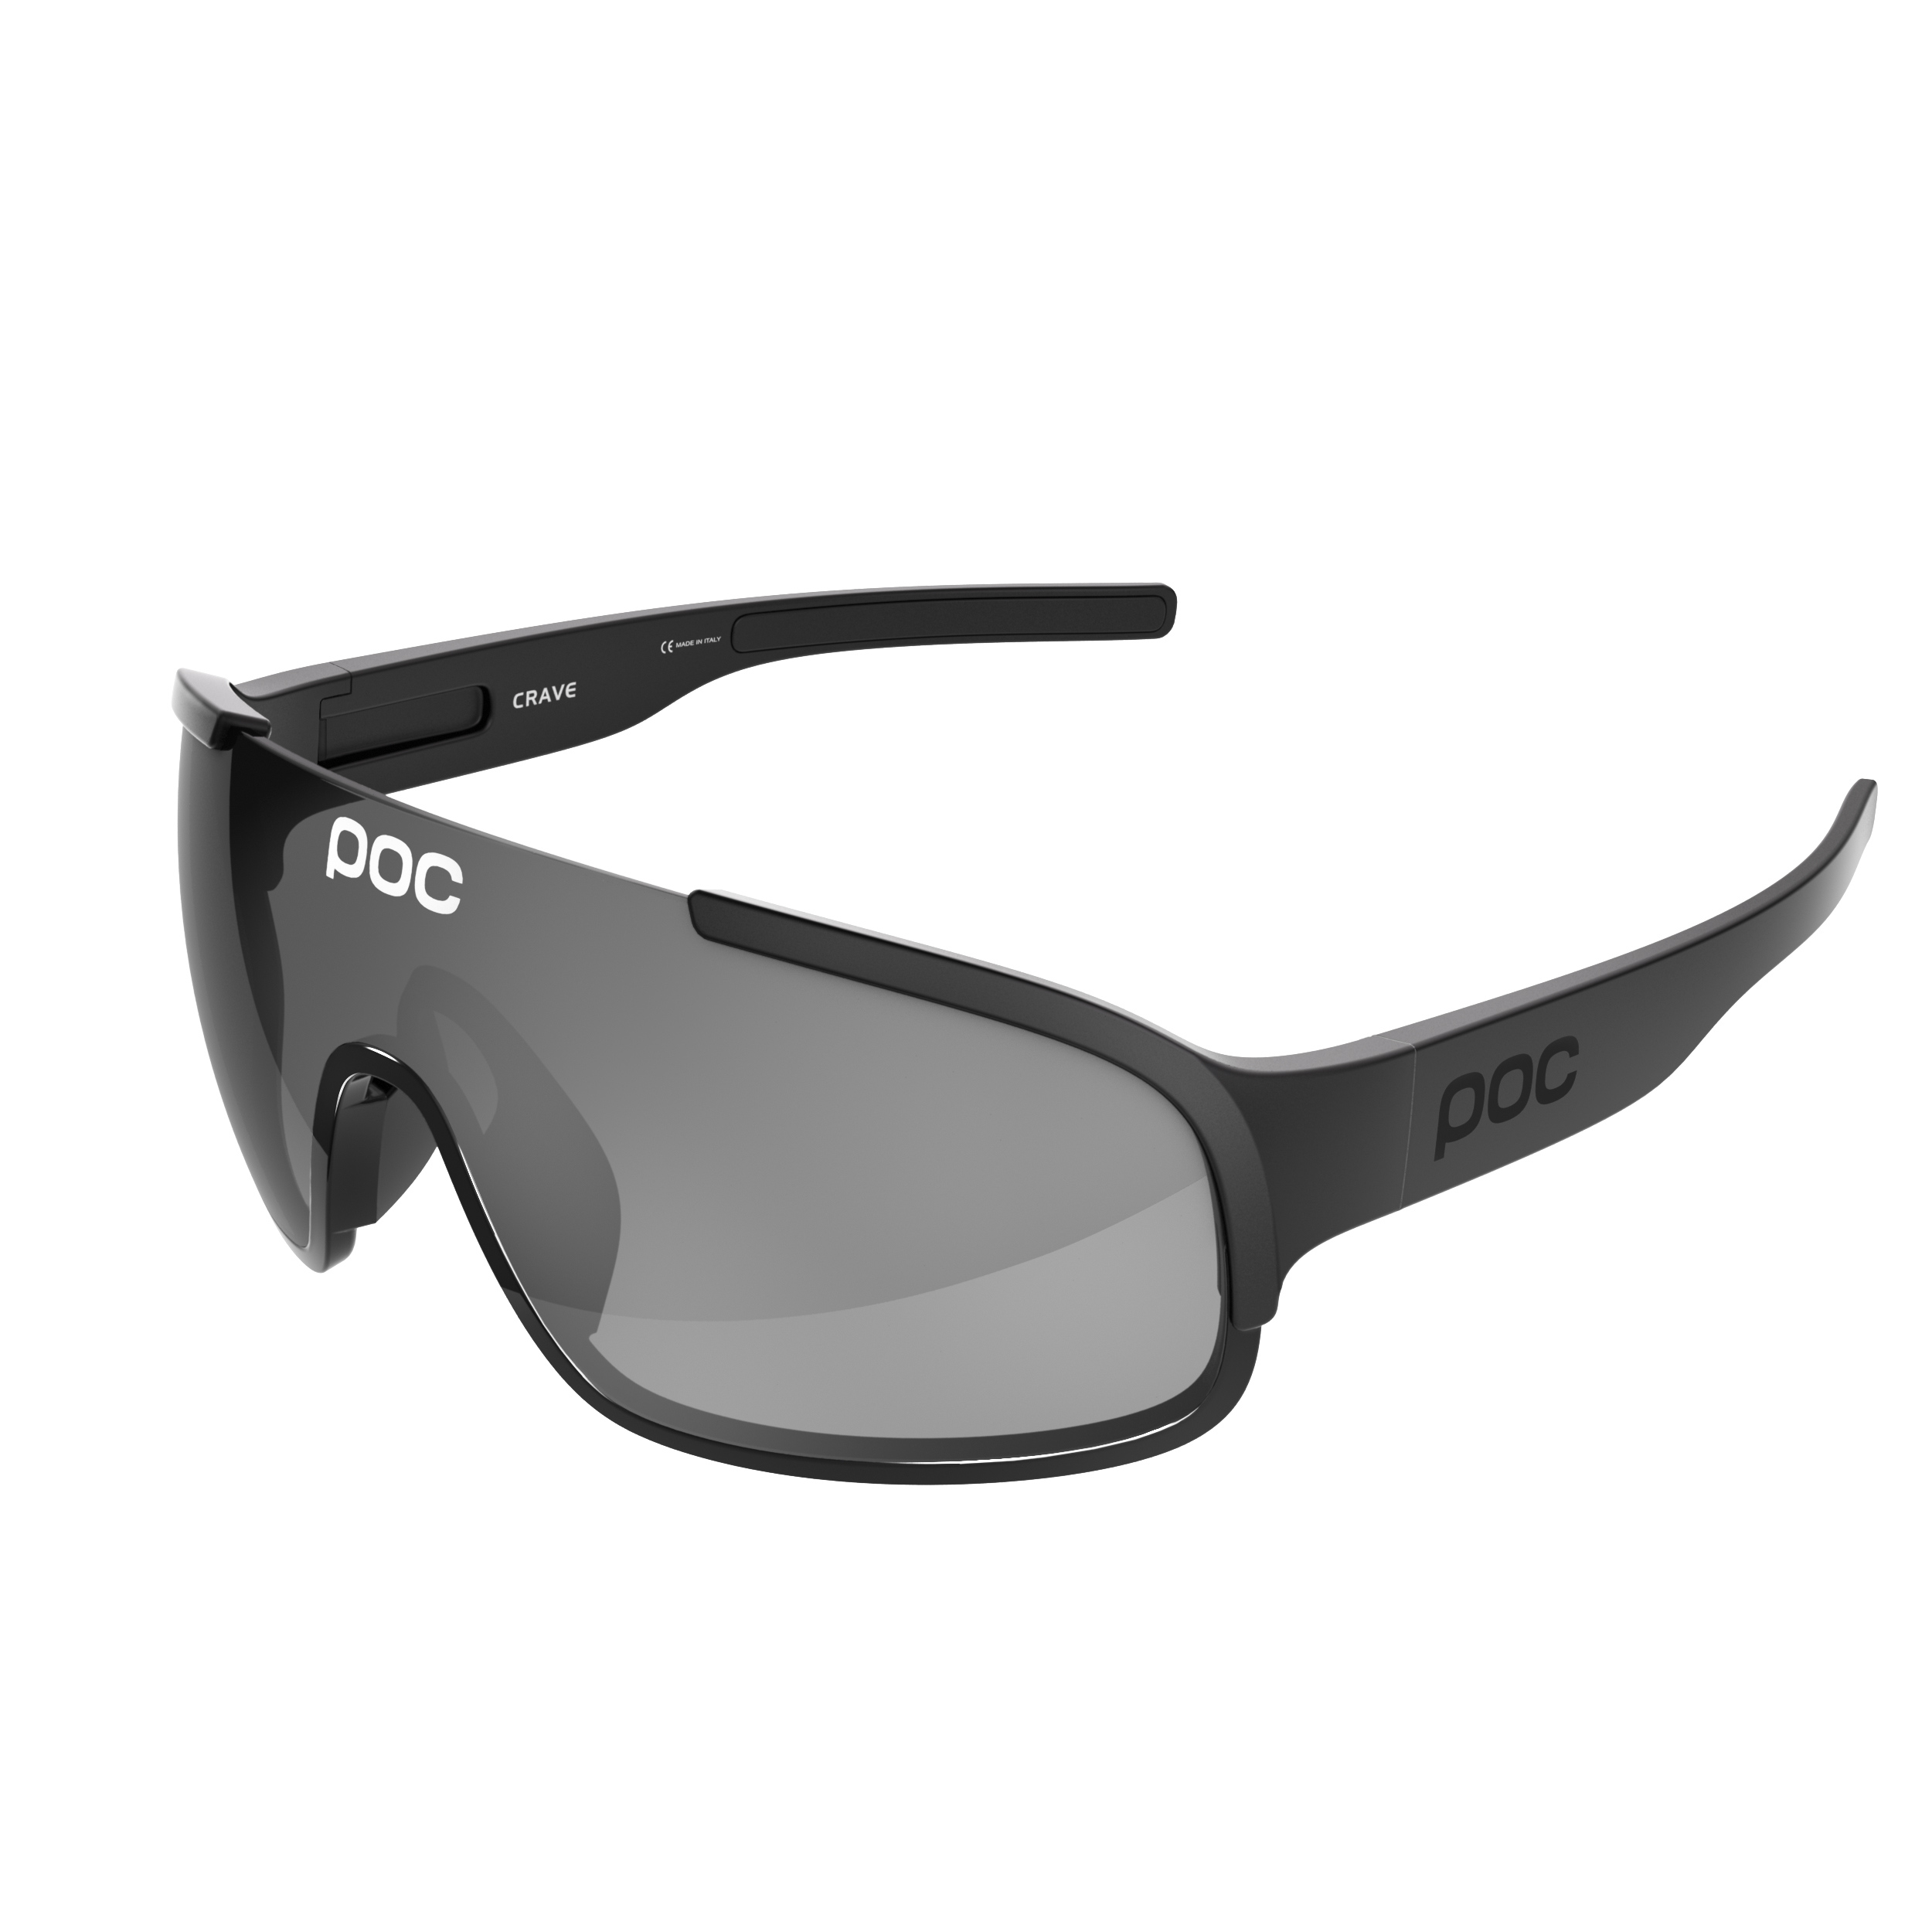 Radsport POC Hydrogen White-Grey 13.3 2018 Crave Cycling Glasses